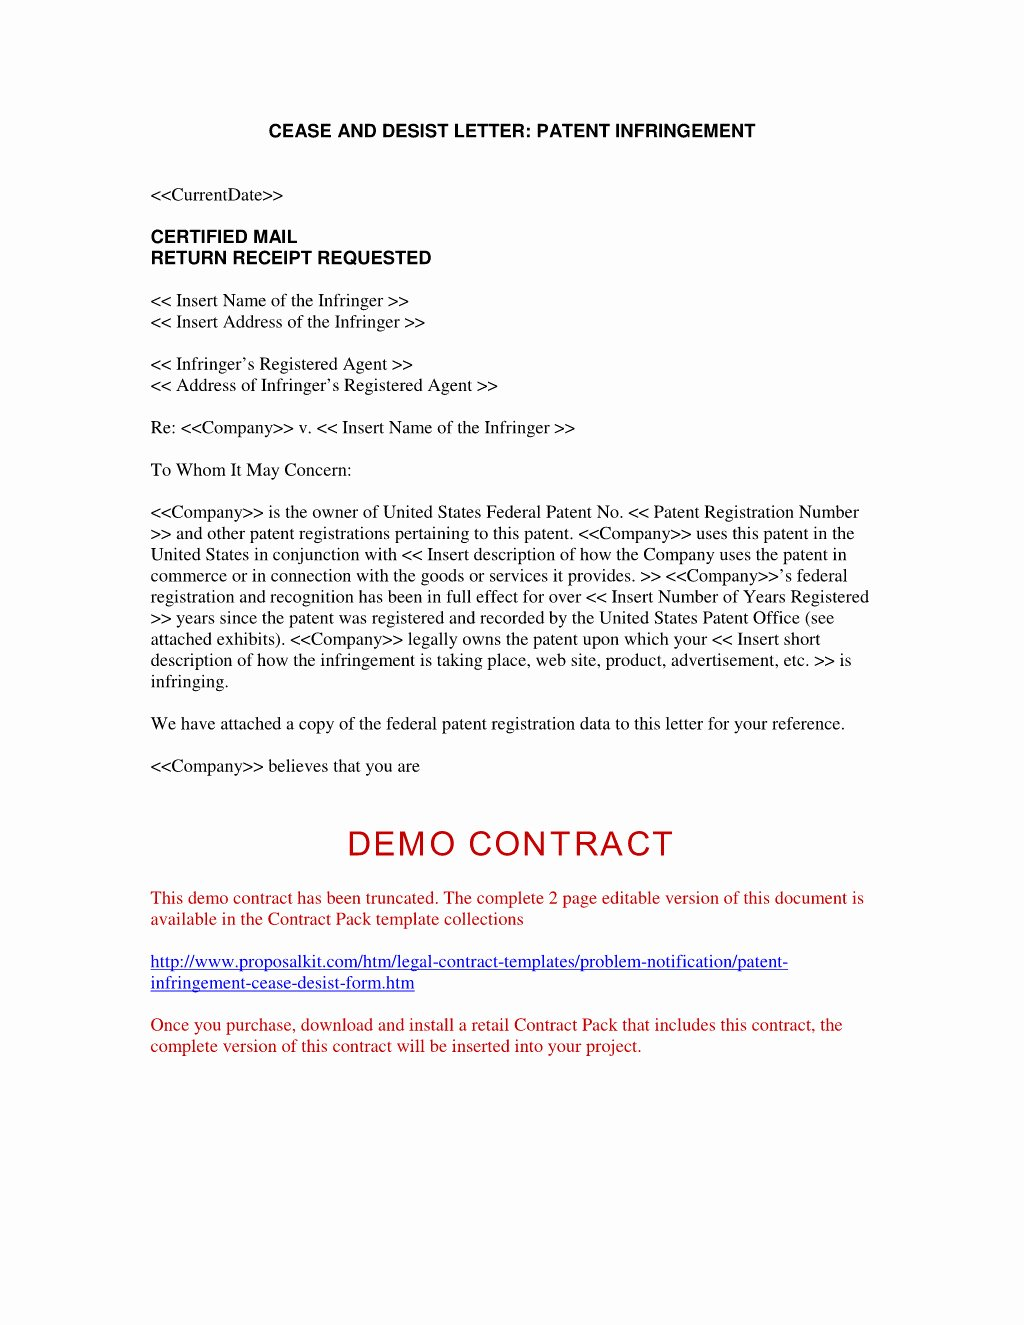 Copyright Cease and Desist Letter Inspirational Cease and Desist Letter Patent Infringement Template